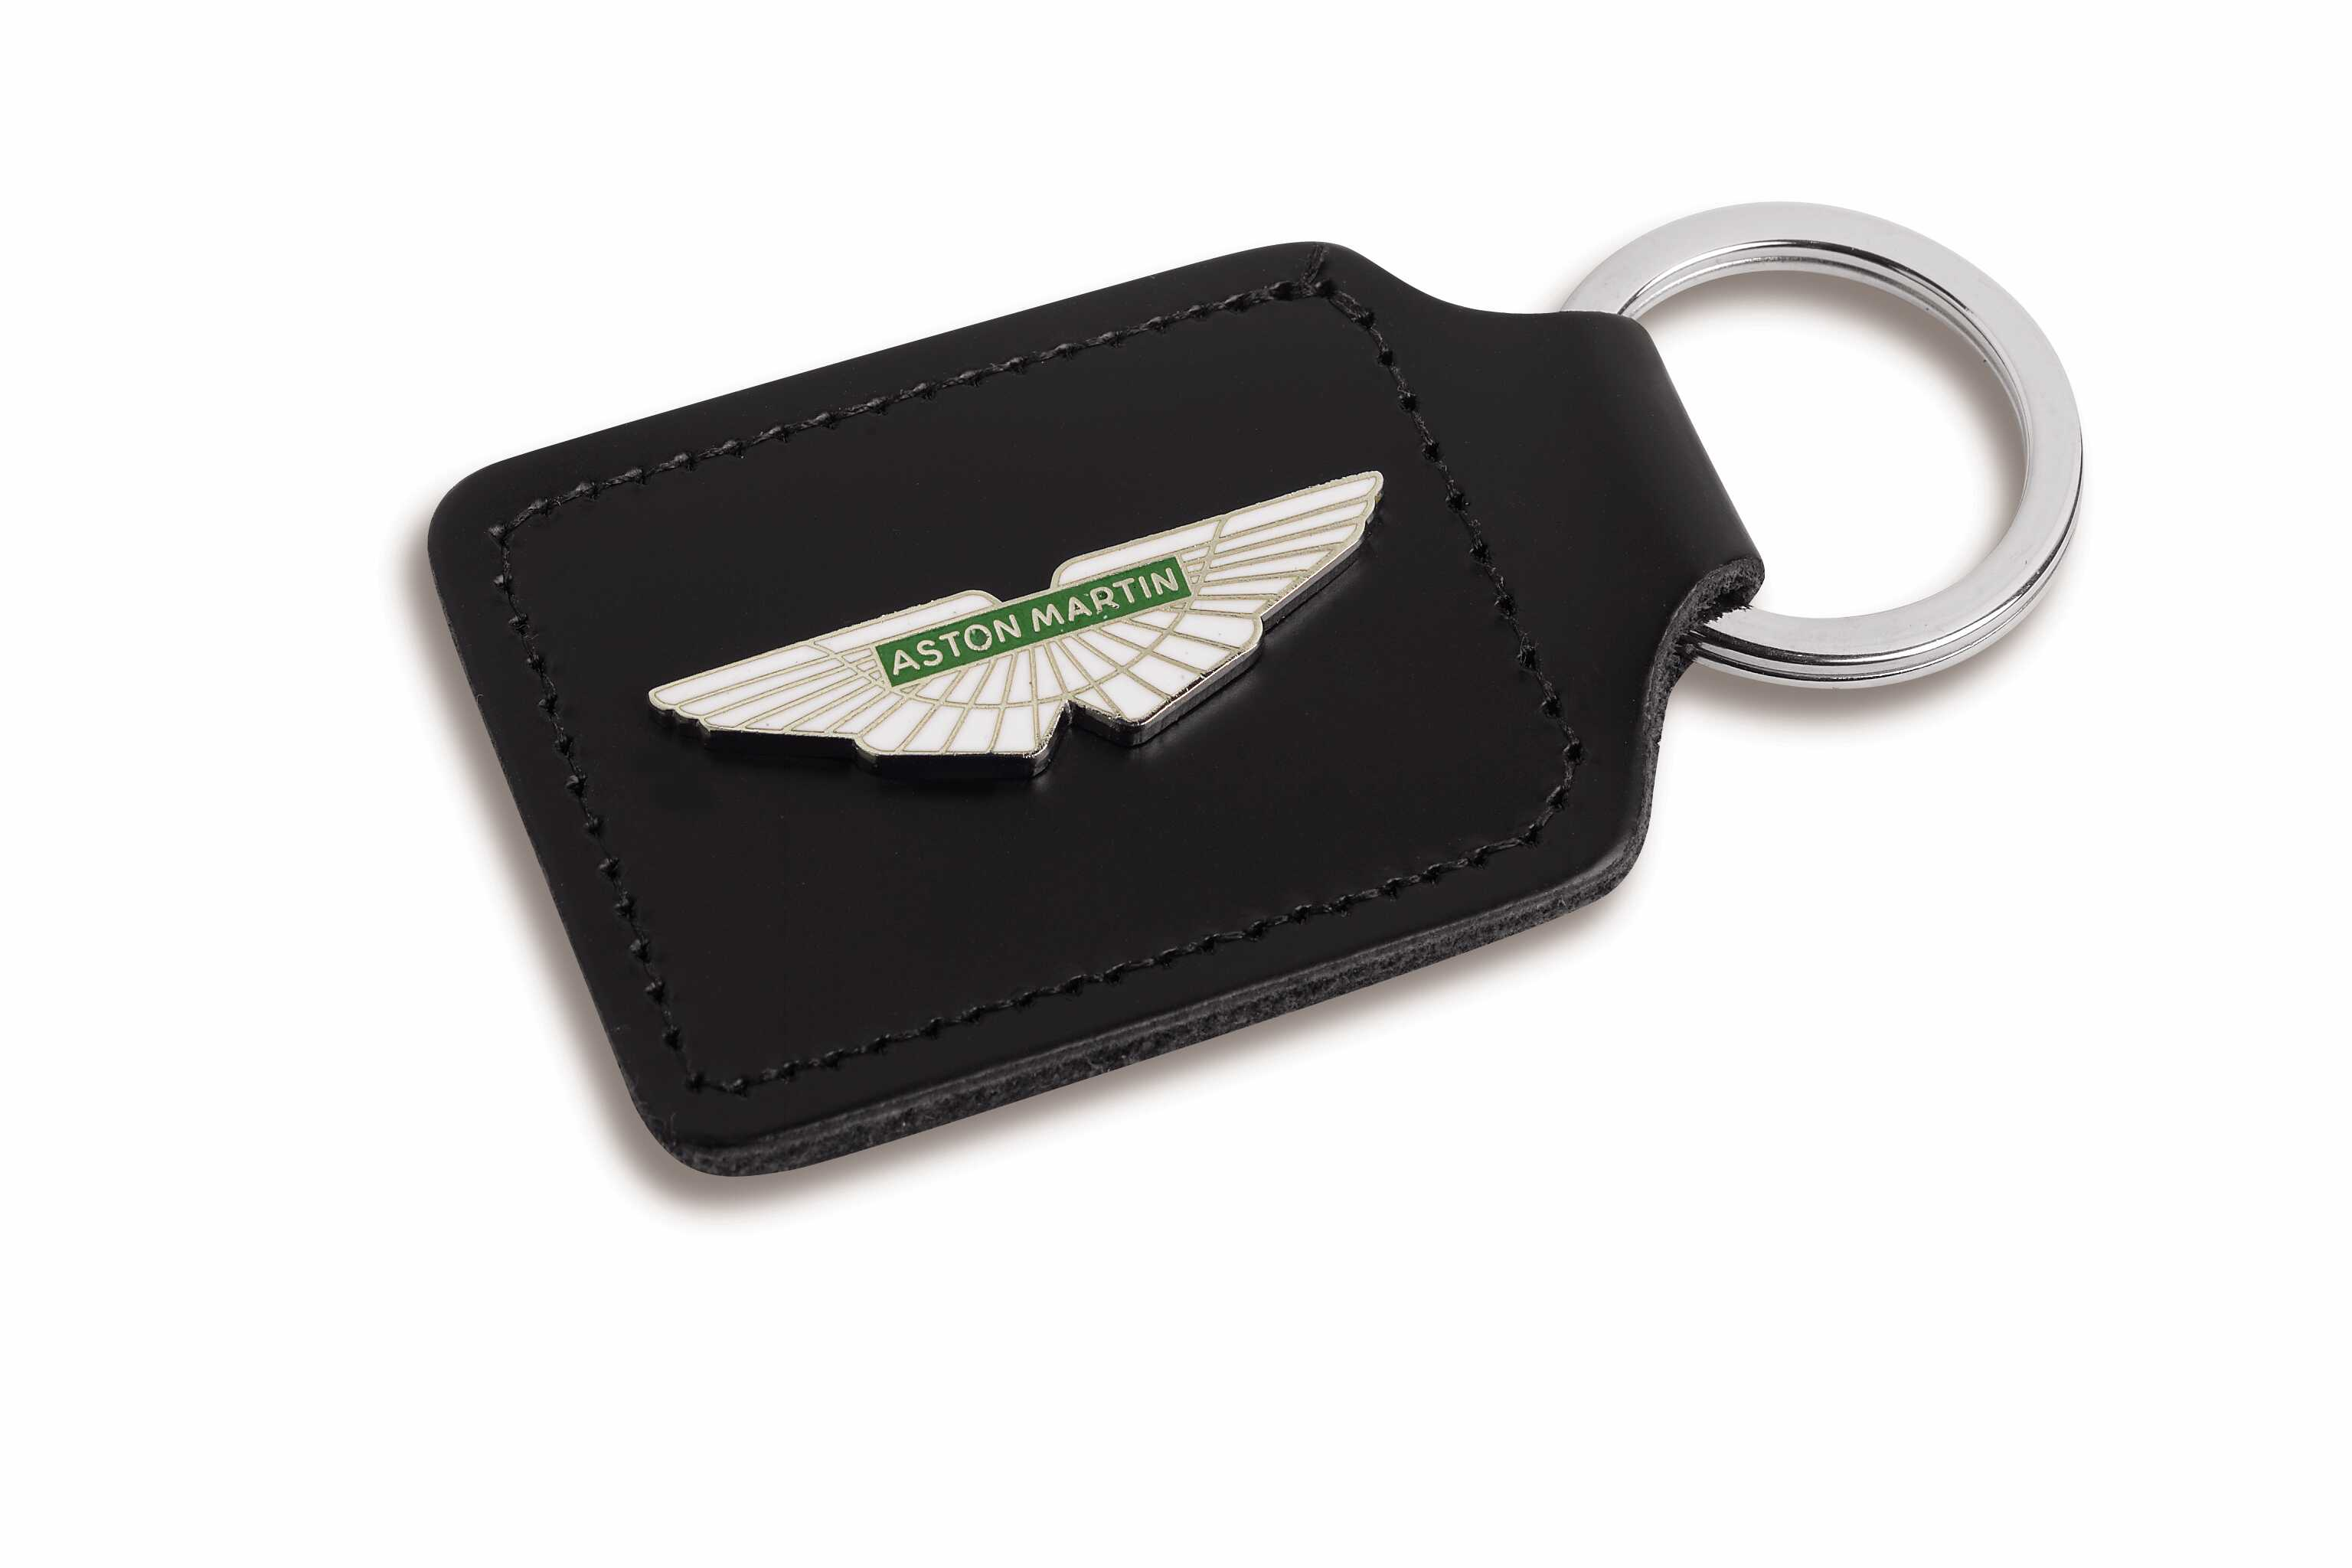 Aston Martin logo leather key fob